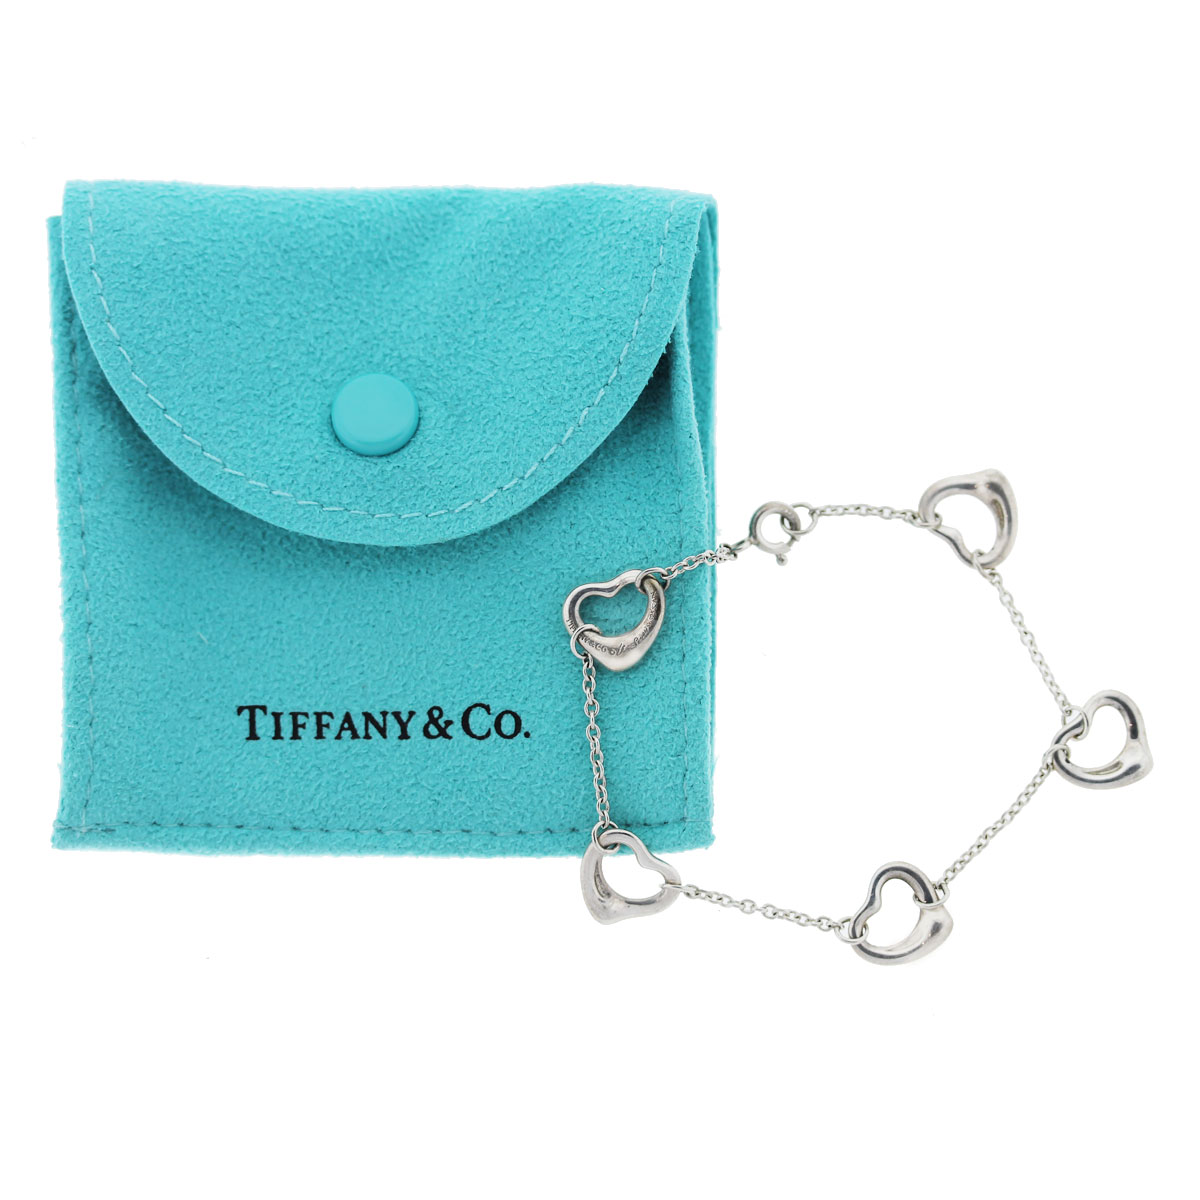 Tiffany and Co. Elsa Peretti Sterling Silver 5 Open Heart Bracelet with Pouch